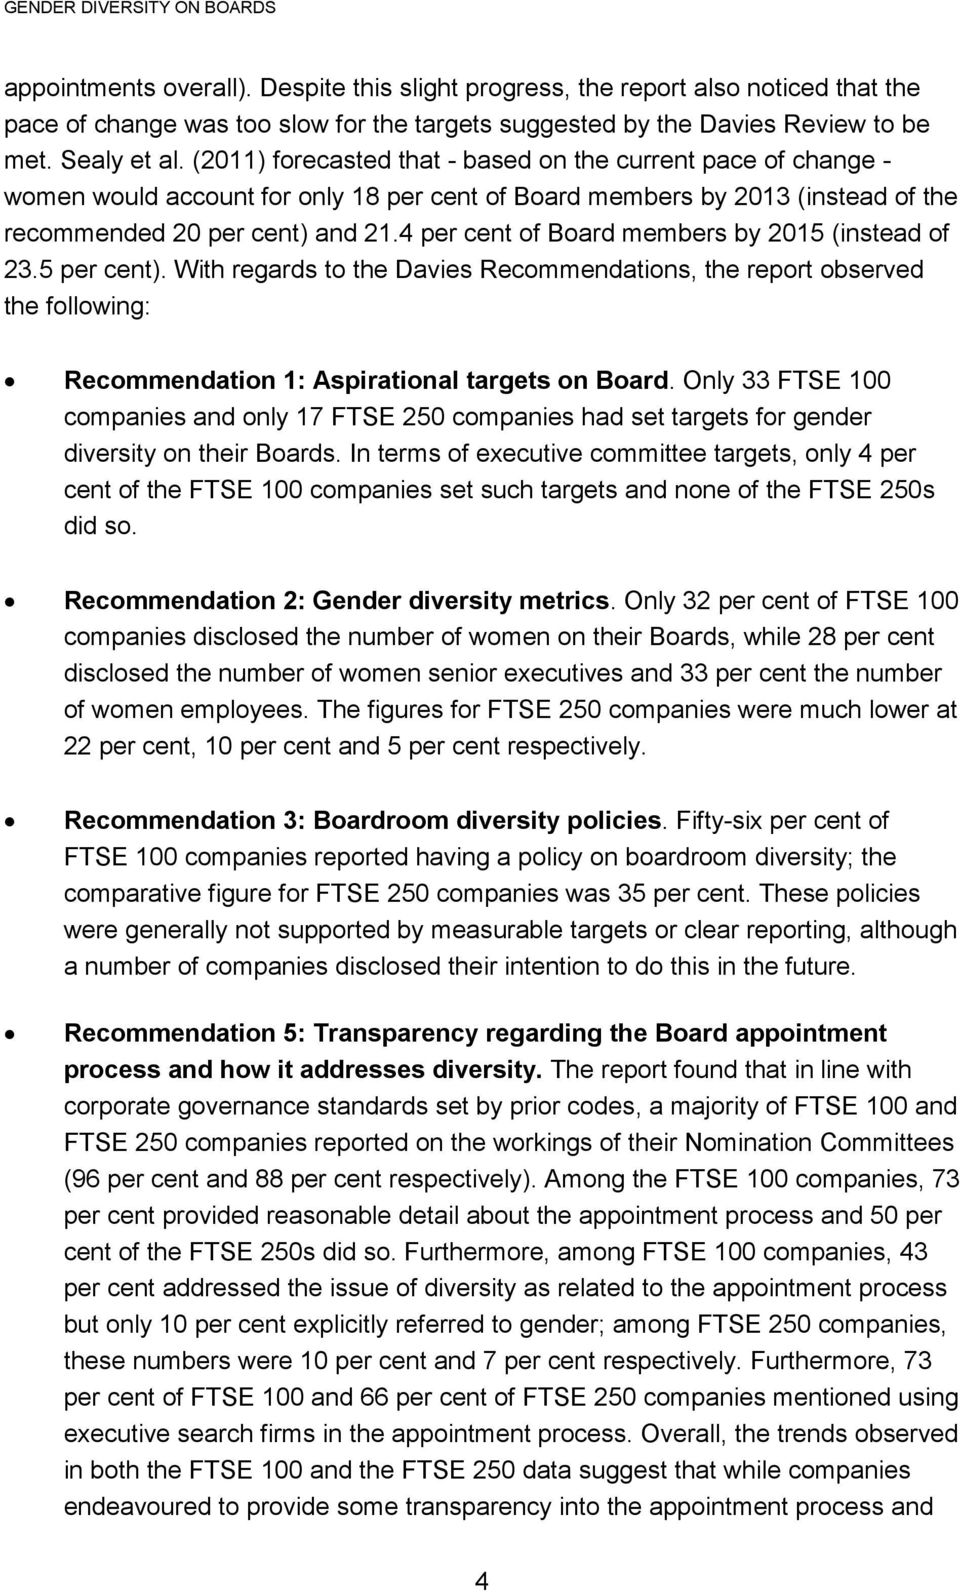 4 per cent of Board members by 2015 (instead of 23.5 per cent). With regards to the Davies Recommendations, the report observed the following: Recommendation 1: Aspirational targets on Board.